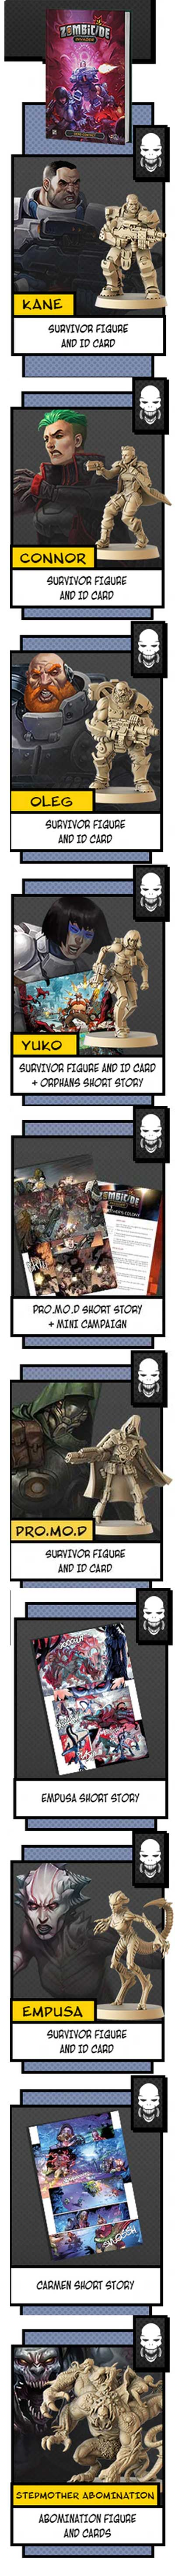 zombicide invader comic book kickstarter cmon the game steward thegamesteward